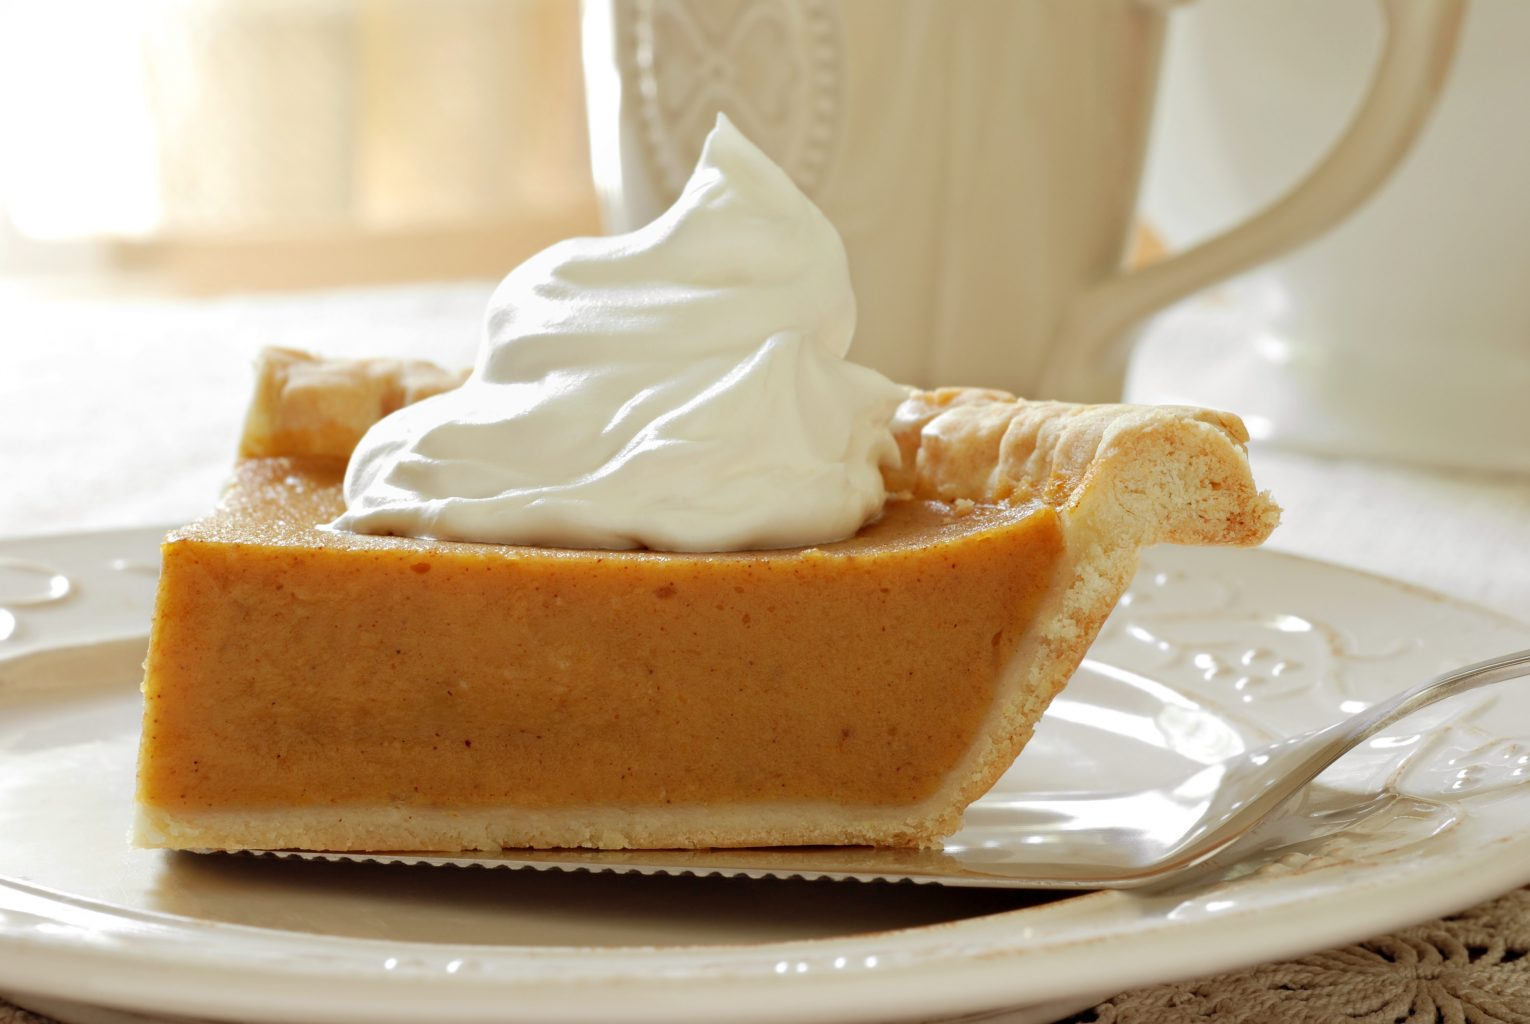 Triple-Infused Pumpkin Pie – Topped with Whipped Cream